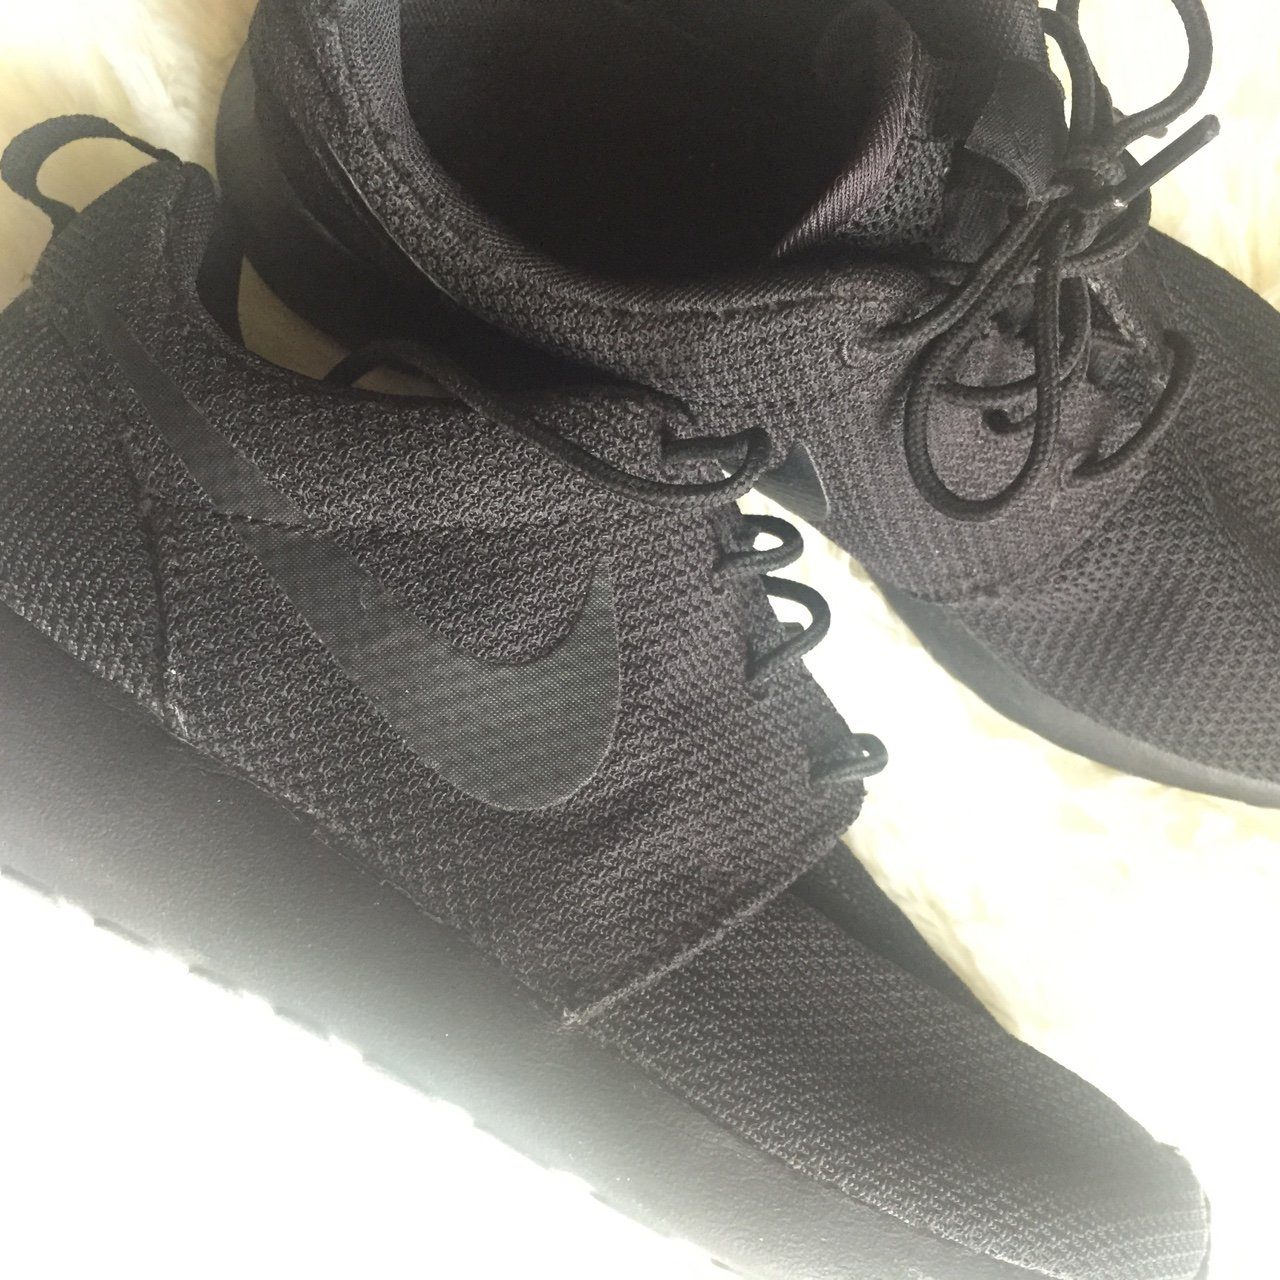 3040a9e9be9a3 All black nike roshe run Size 7.5 in men s wear There s. in - Depop